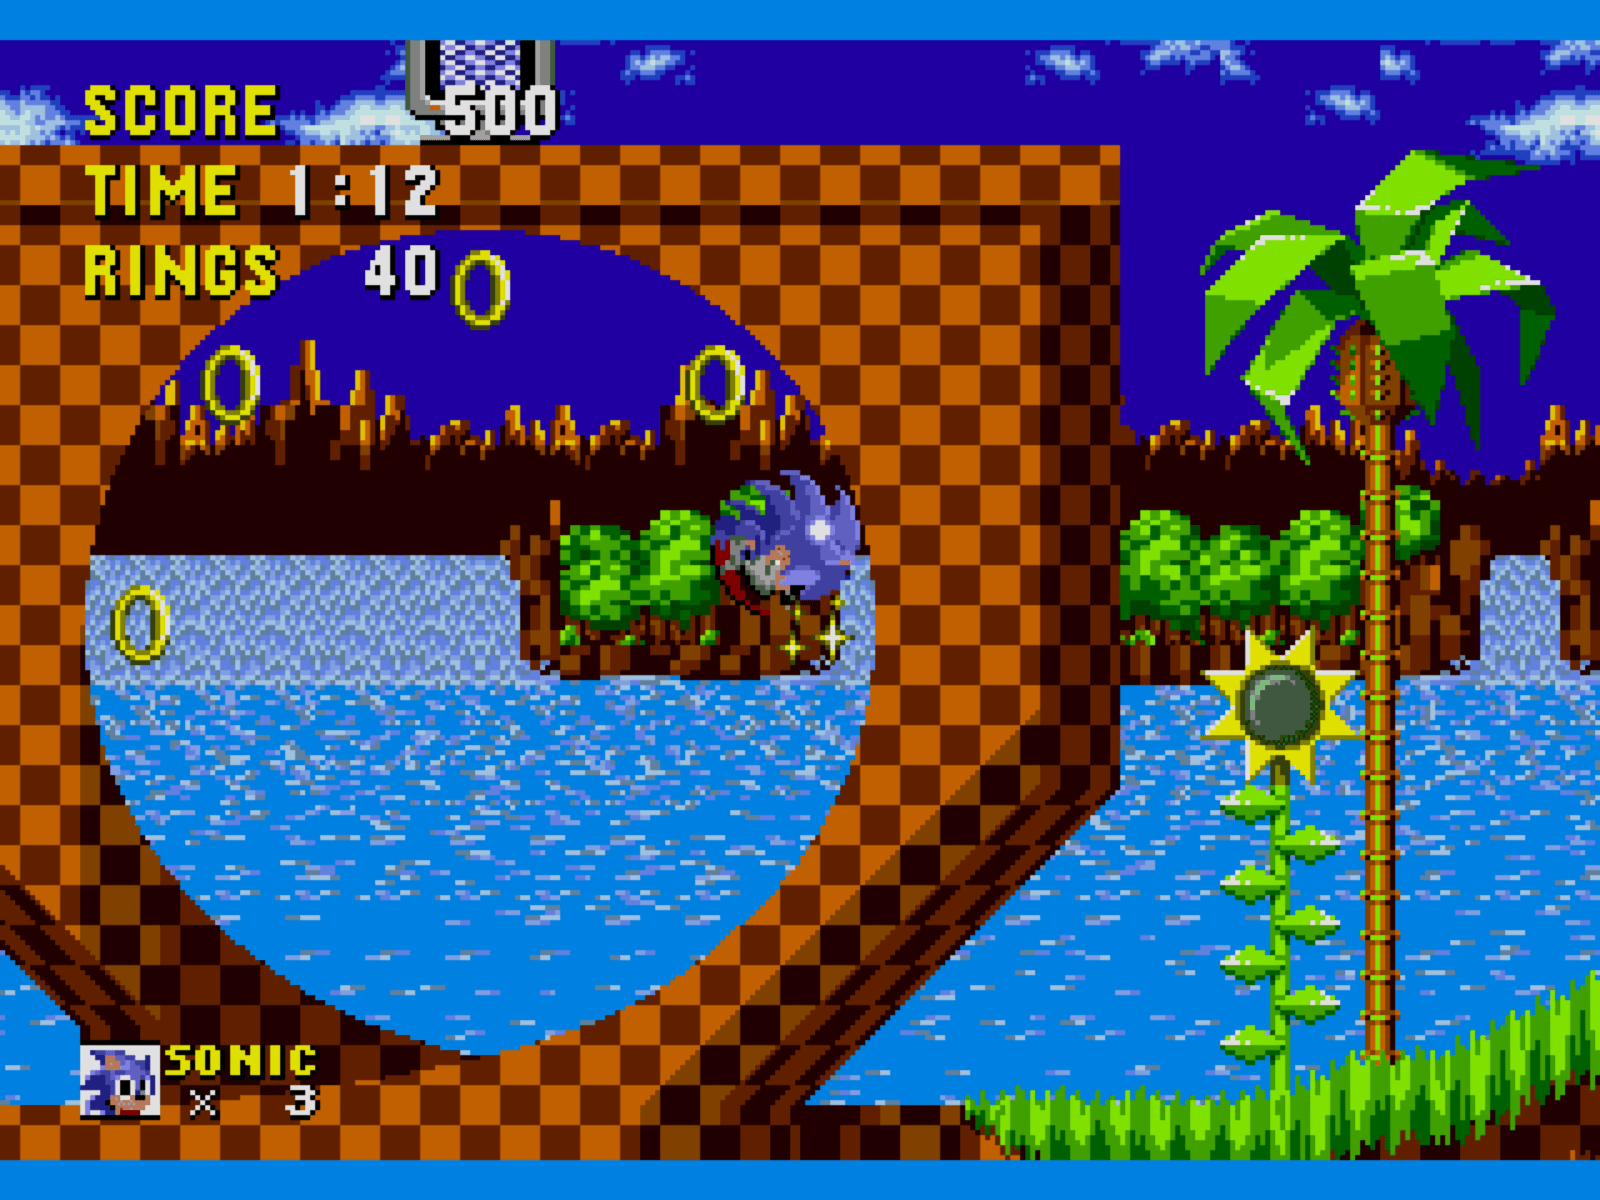 An image showing sonic being played